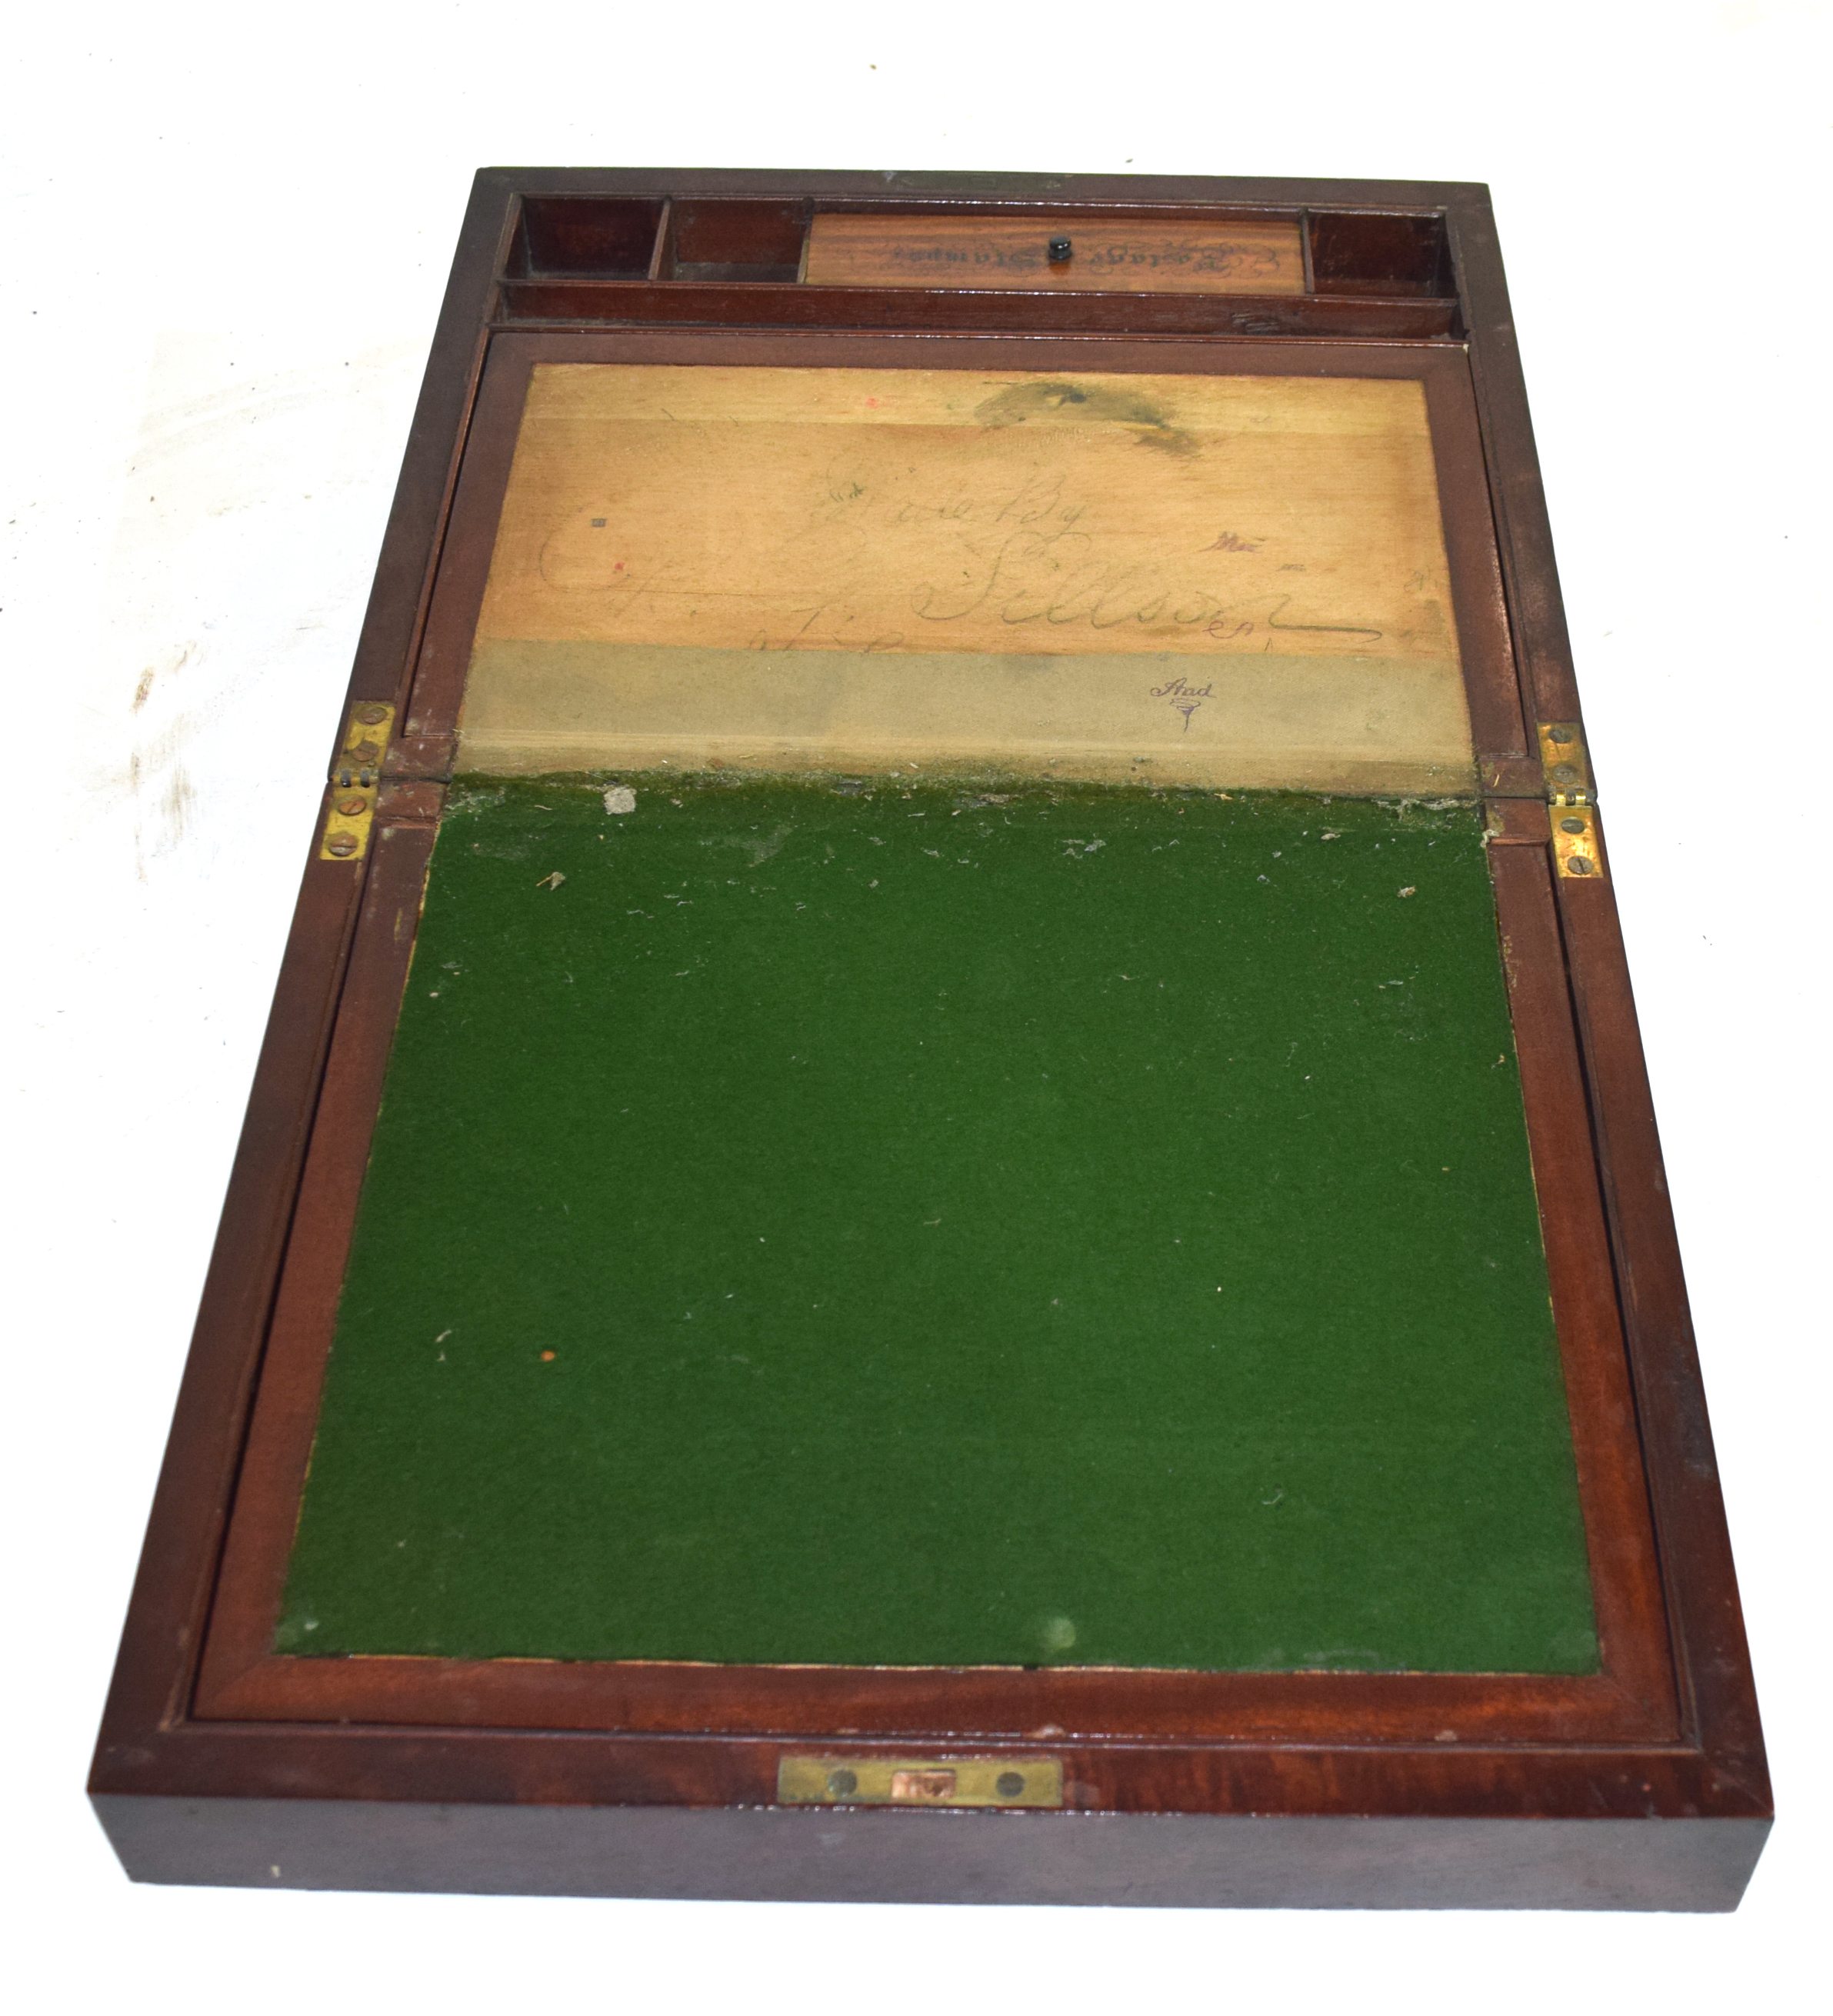 Large 19th century mahogany writing box with fitted interior, 38cm wide Condition: very worn - Image 3 of 3